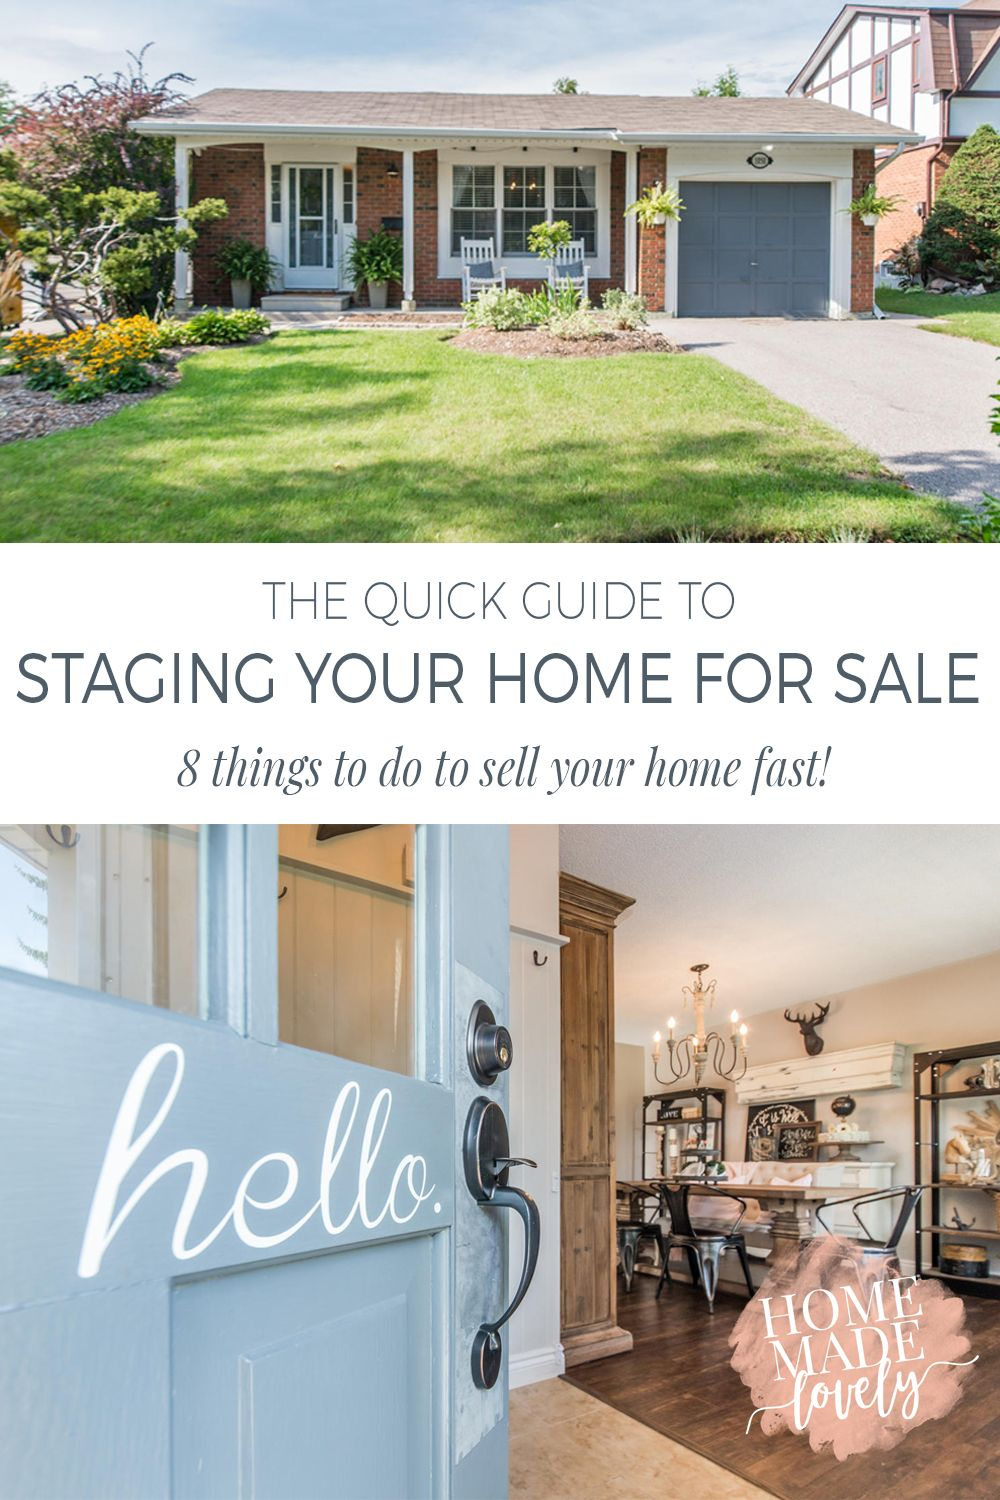 Do it yourself things to selling your home